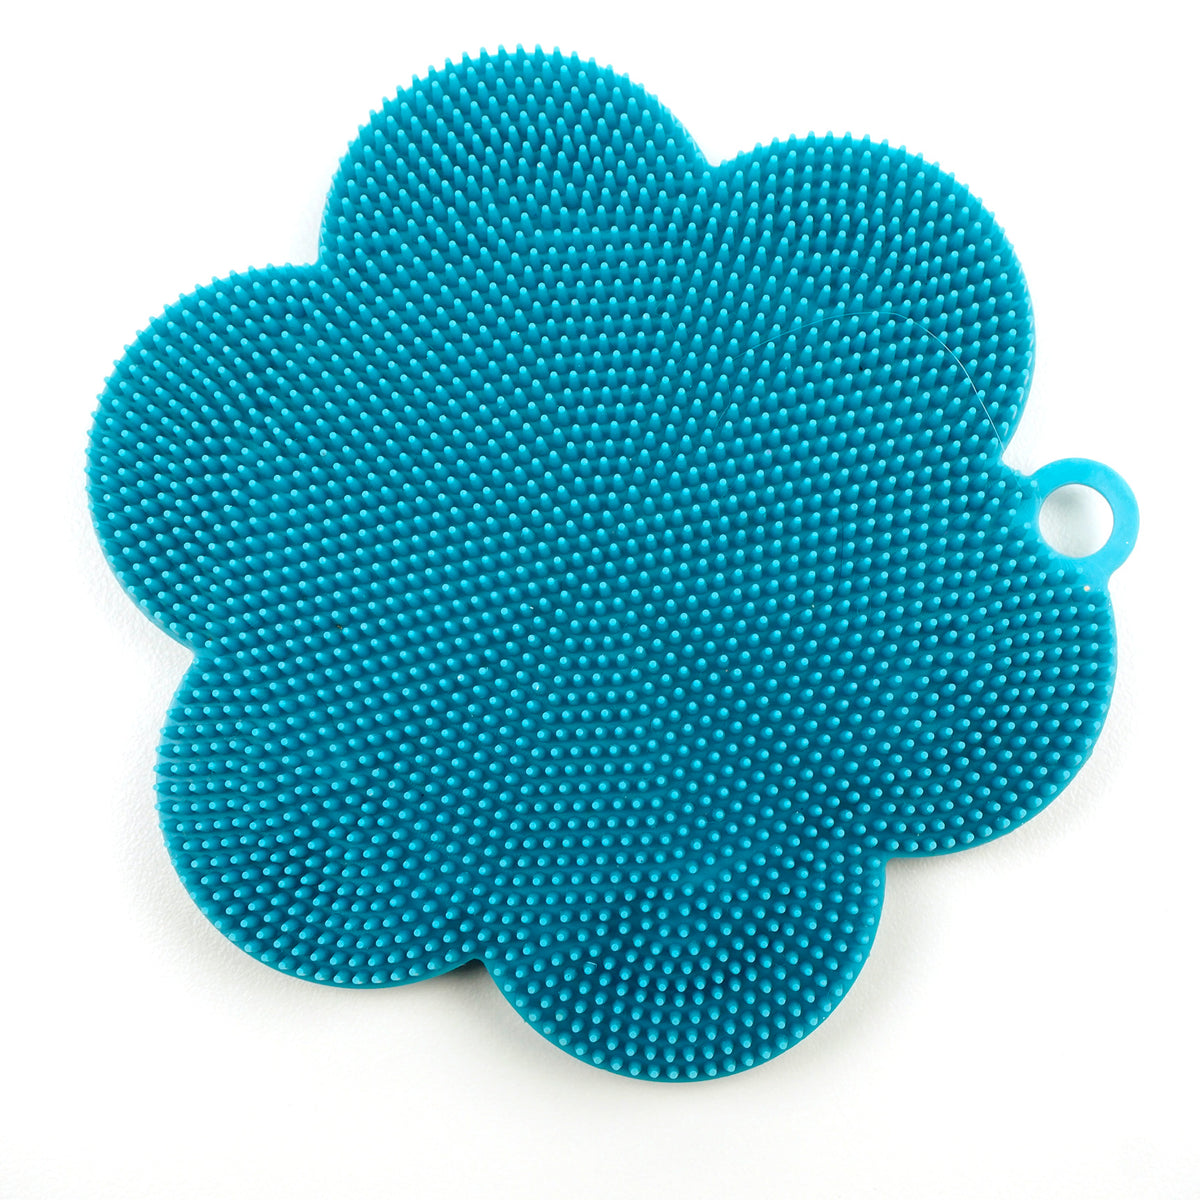 RSVP - Silicone Soft Scrubber, Turquoise